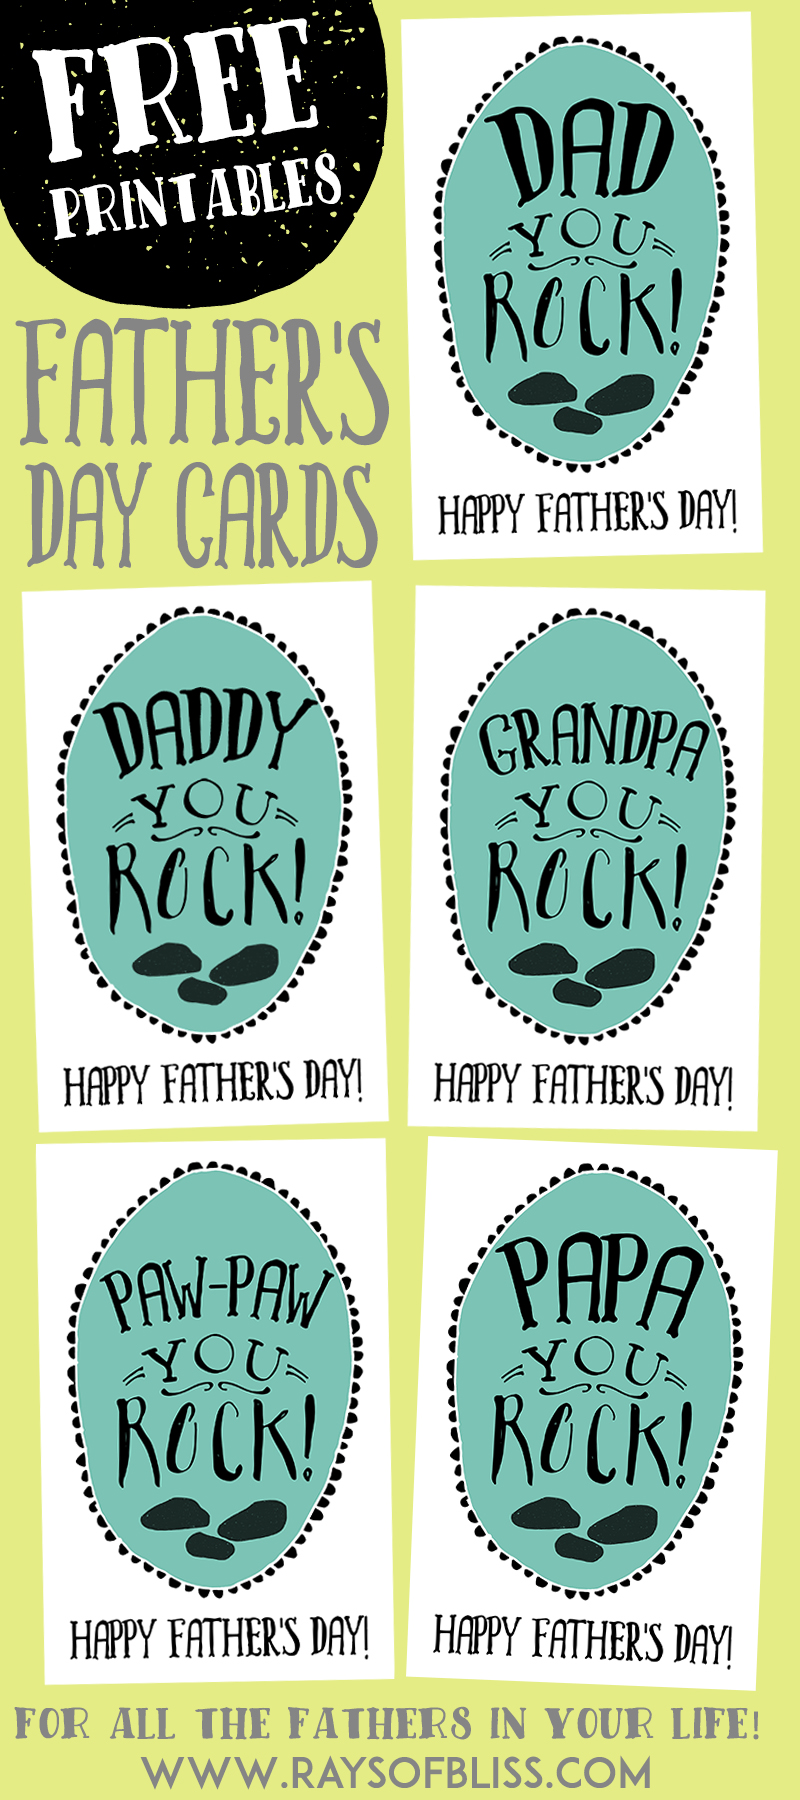 You Rock Father's Day Cards - Free Printables